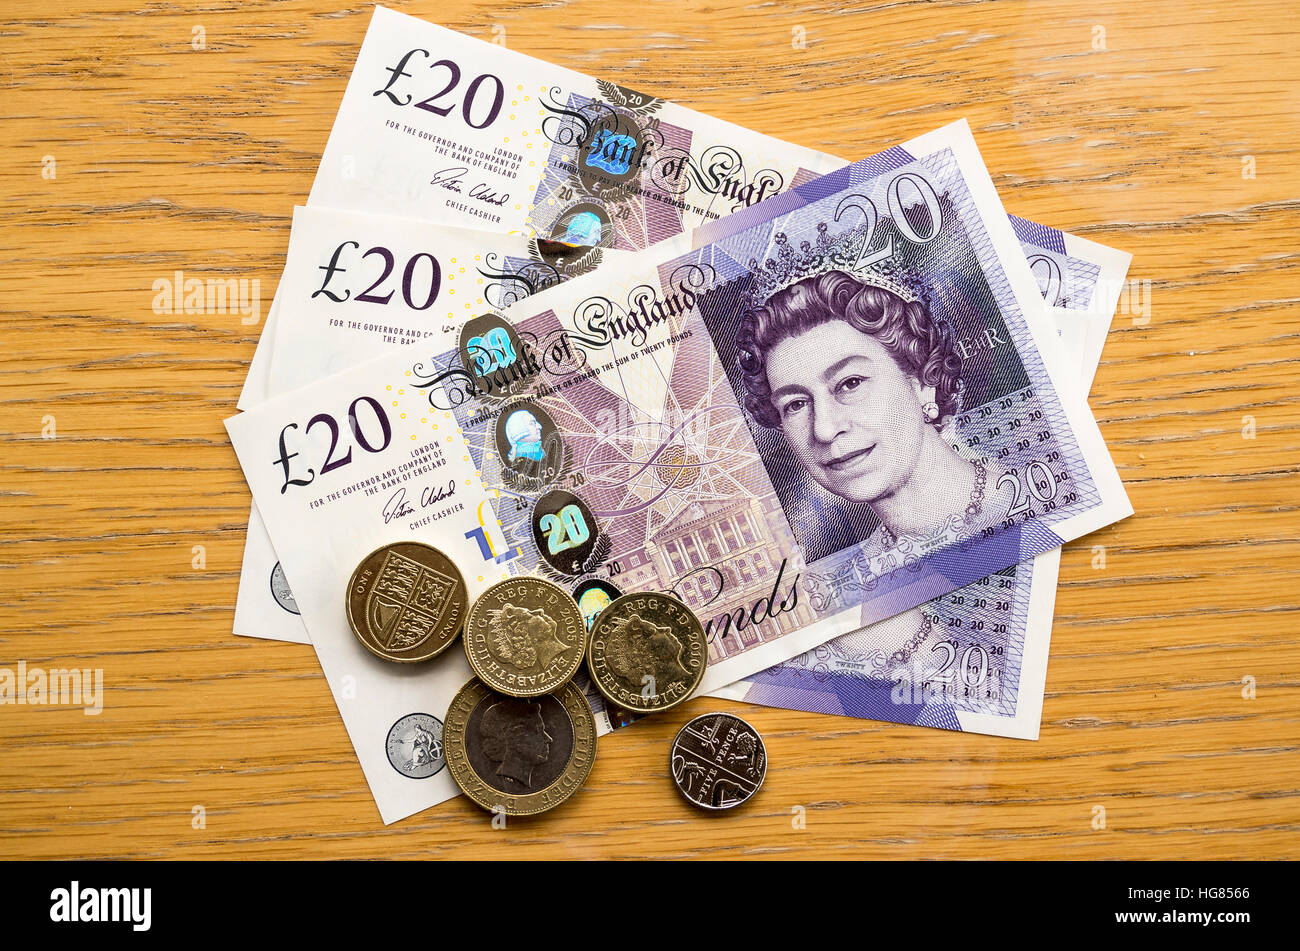 UK British currency notes and coins on a table - Stock Image